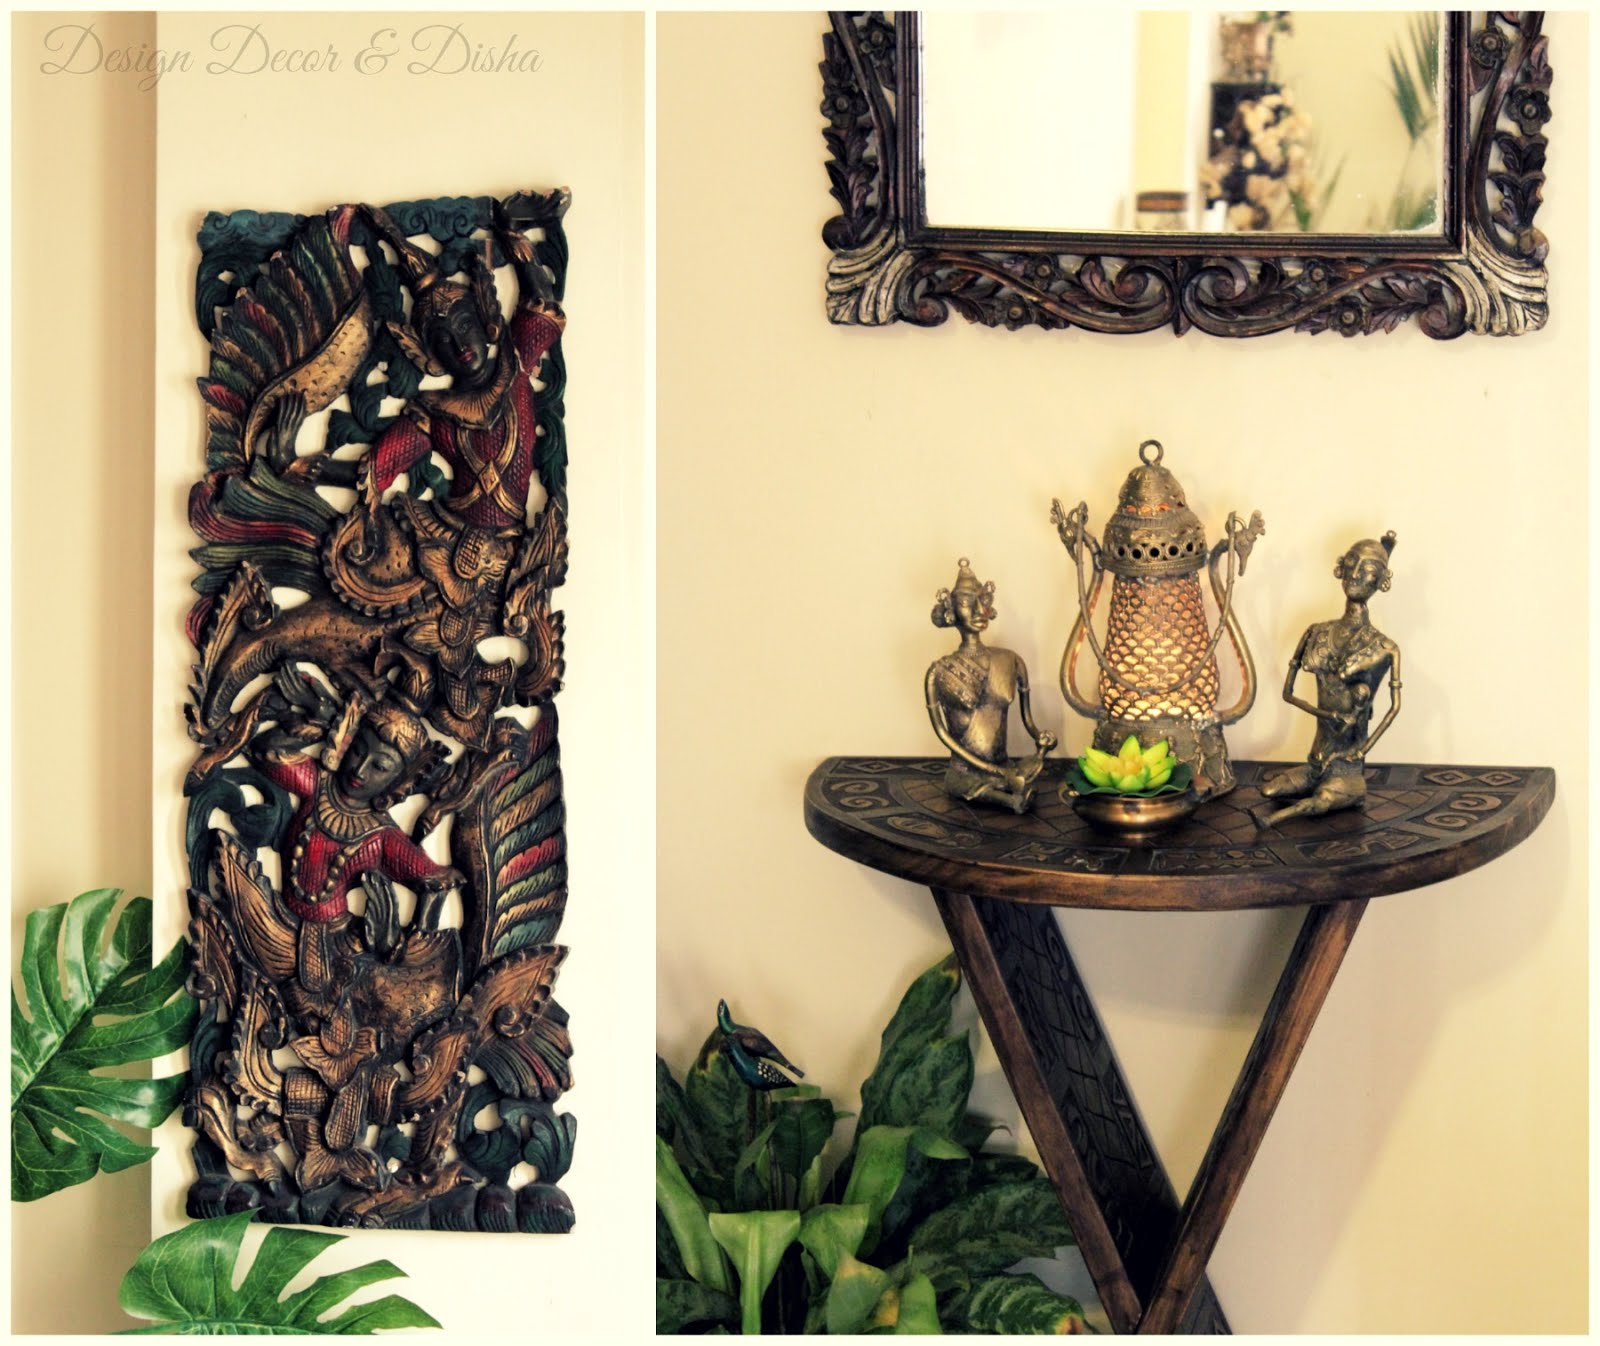 Design decor disha an indian design decor blog home tour kapila banerjee - Indian home decor online style ...